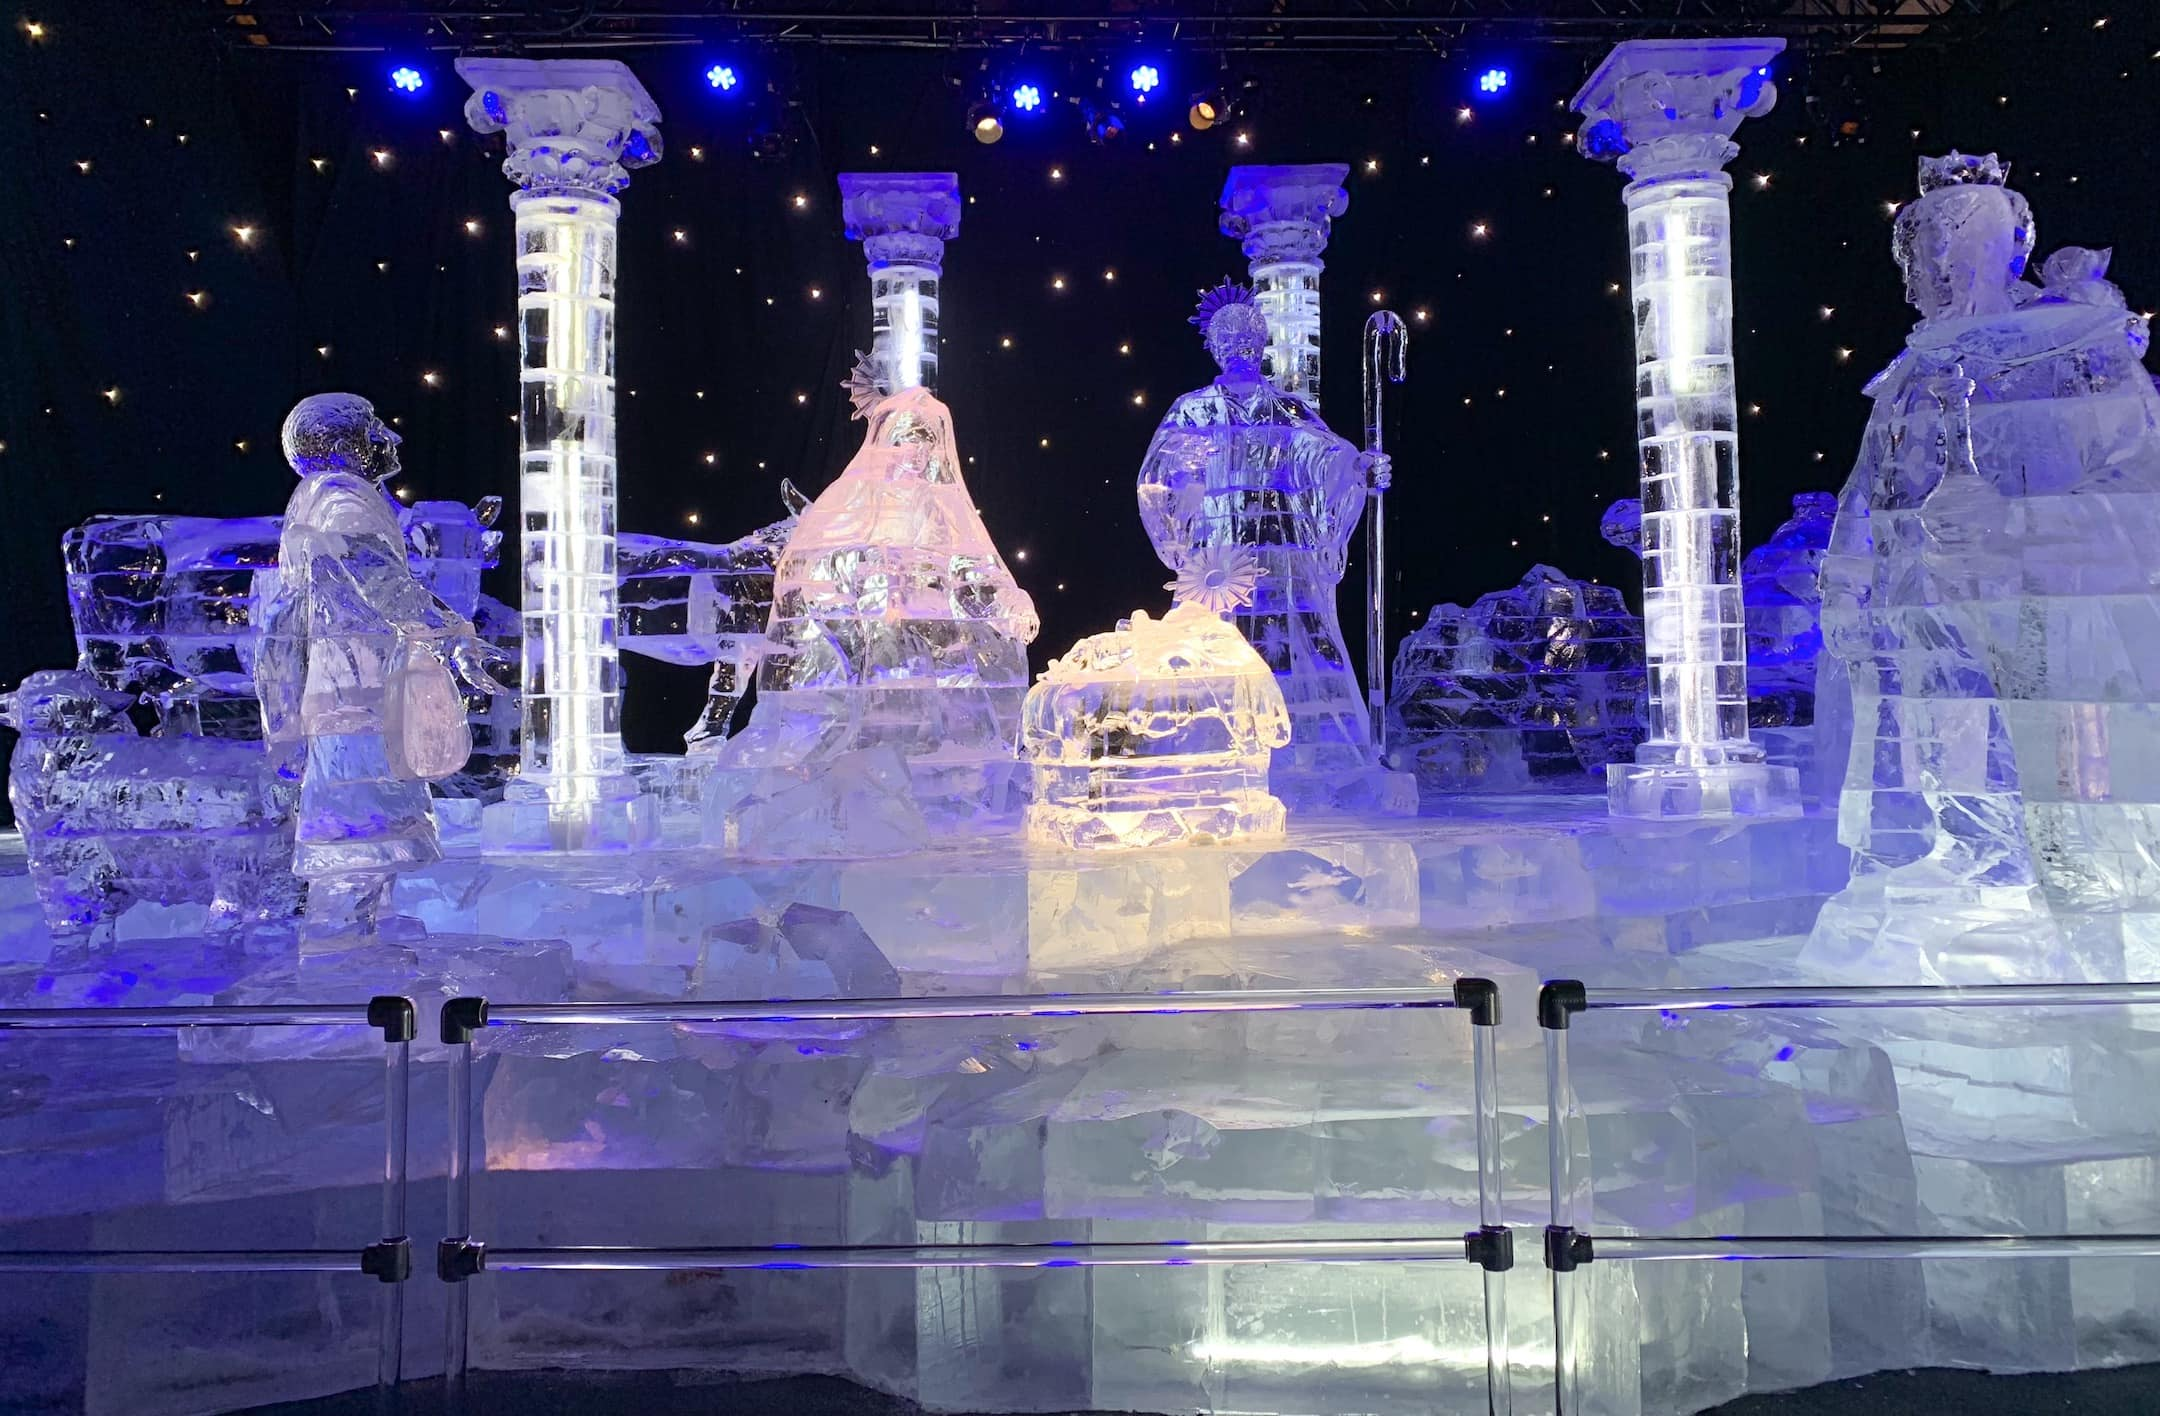 nativity carved from clear ice blocks